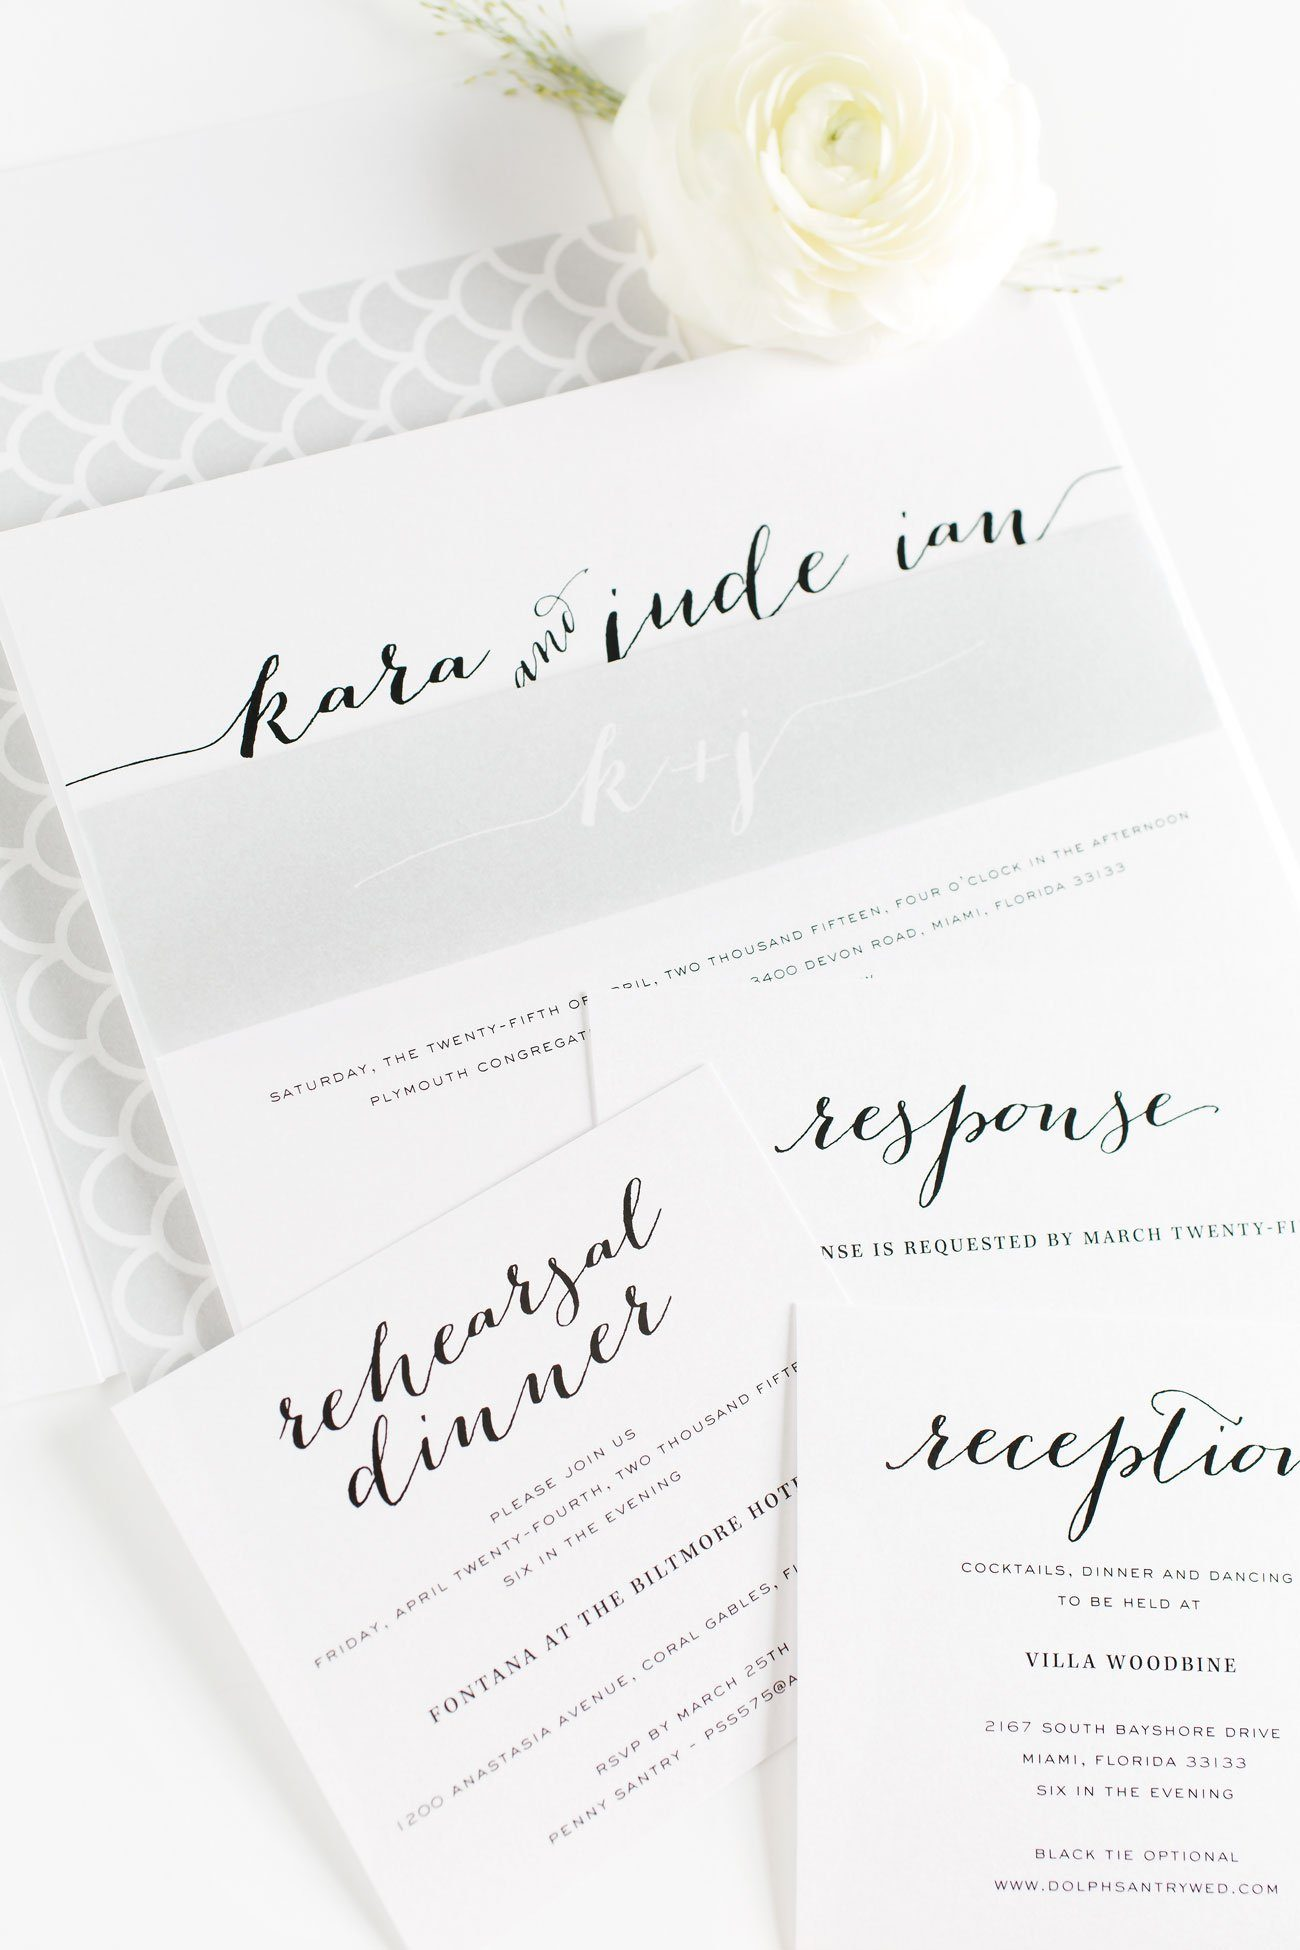 Flowing Script Wedding Invitations in Silver Gray